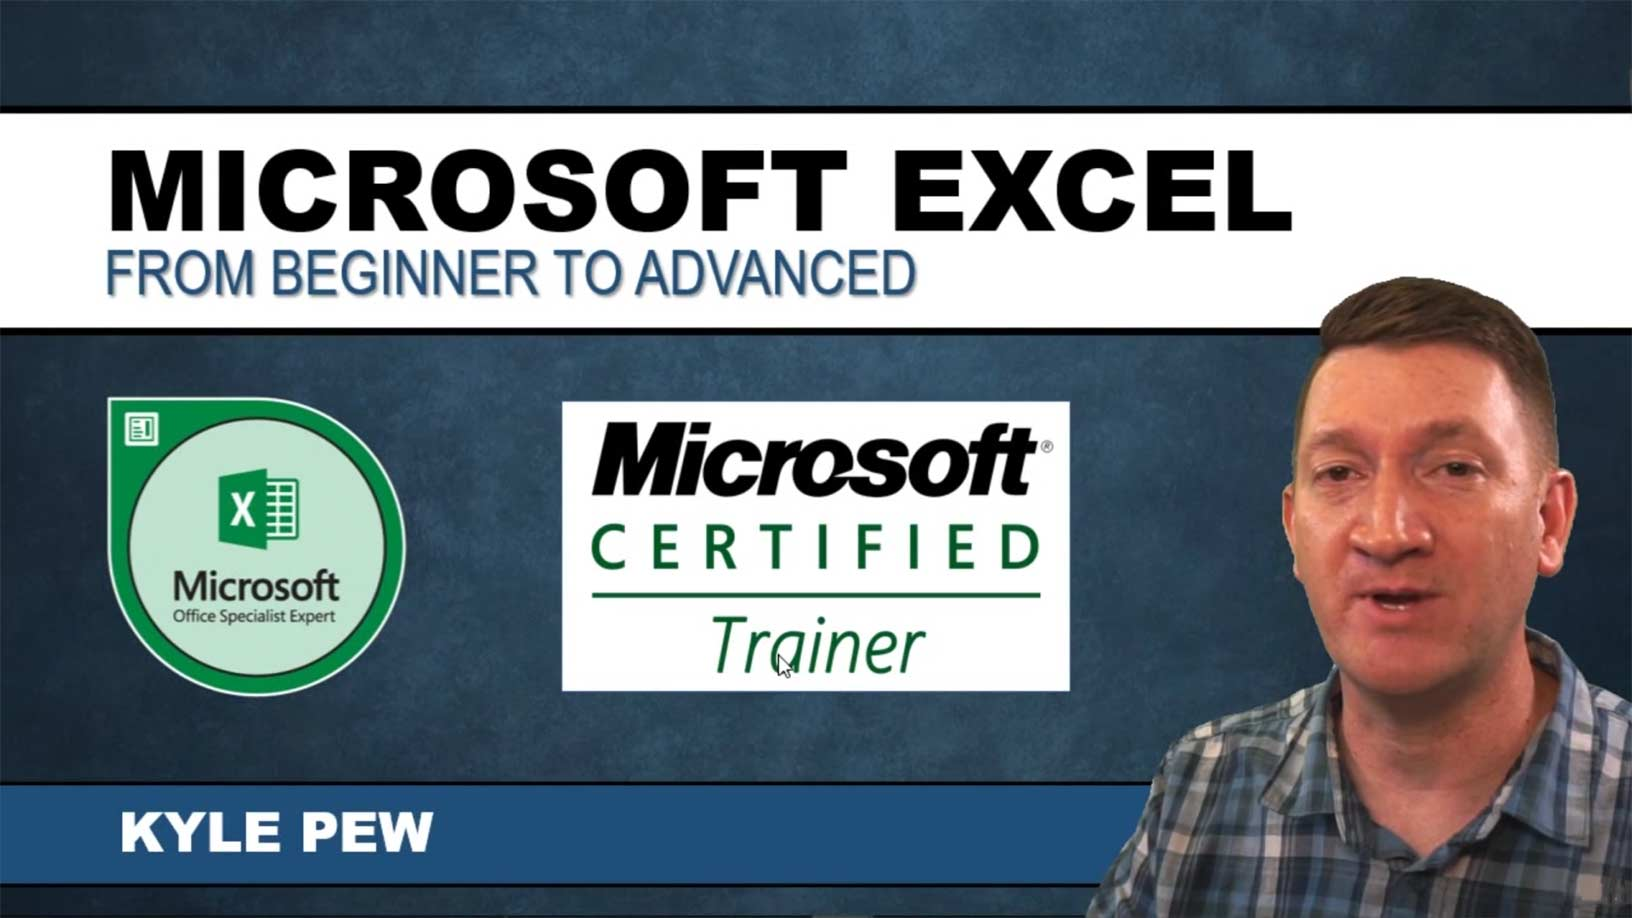 Microsoft Excel - Excel from Beginner to Advanced[Udemy Download]